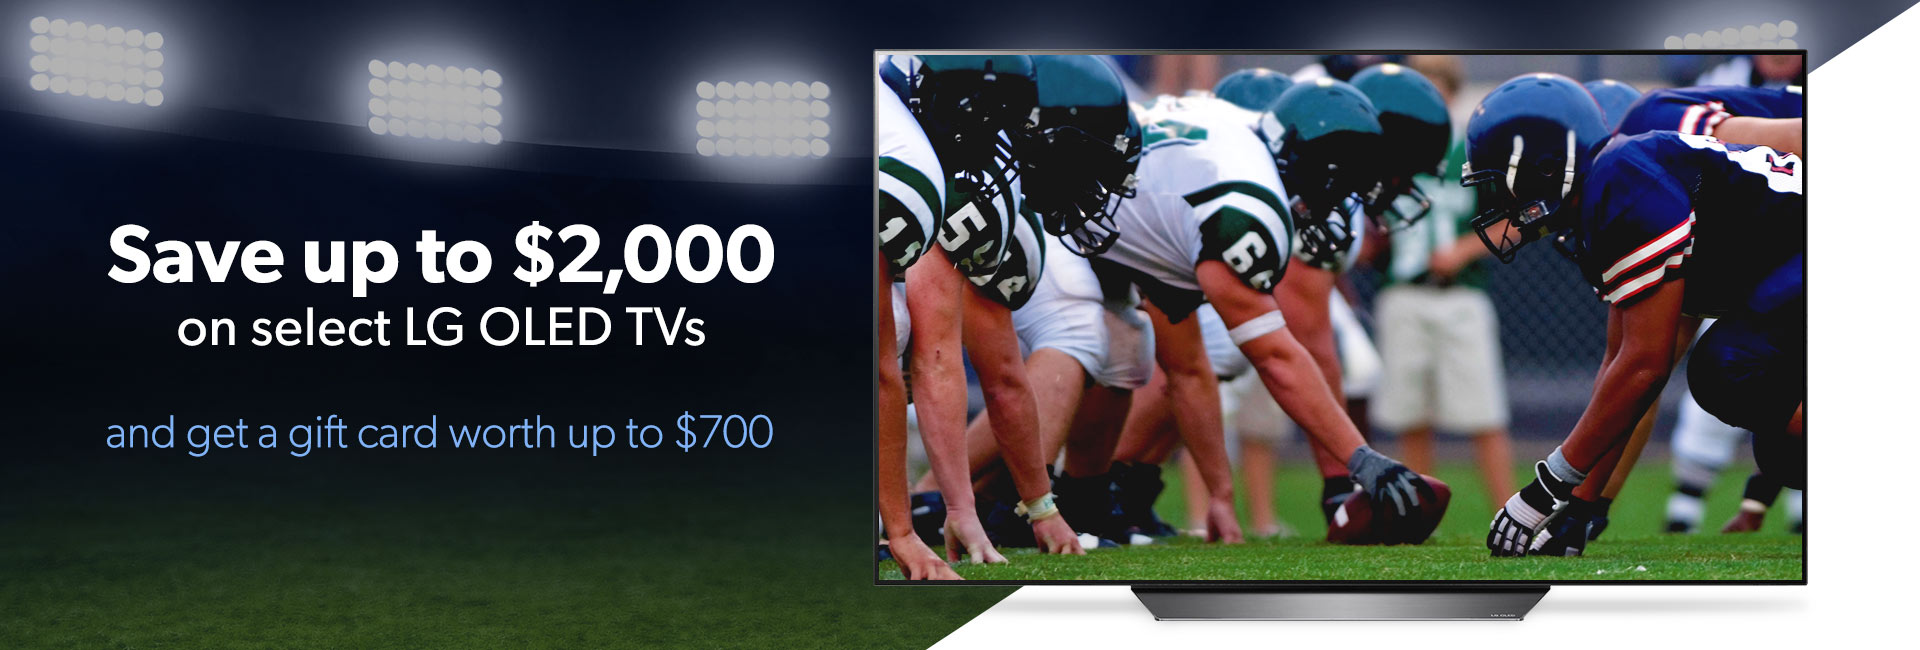 Save up to $2,000 on select LG OLED TVs and get a gift card worth up to $700